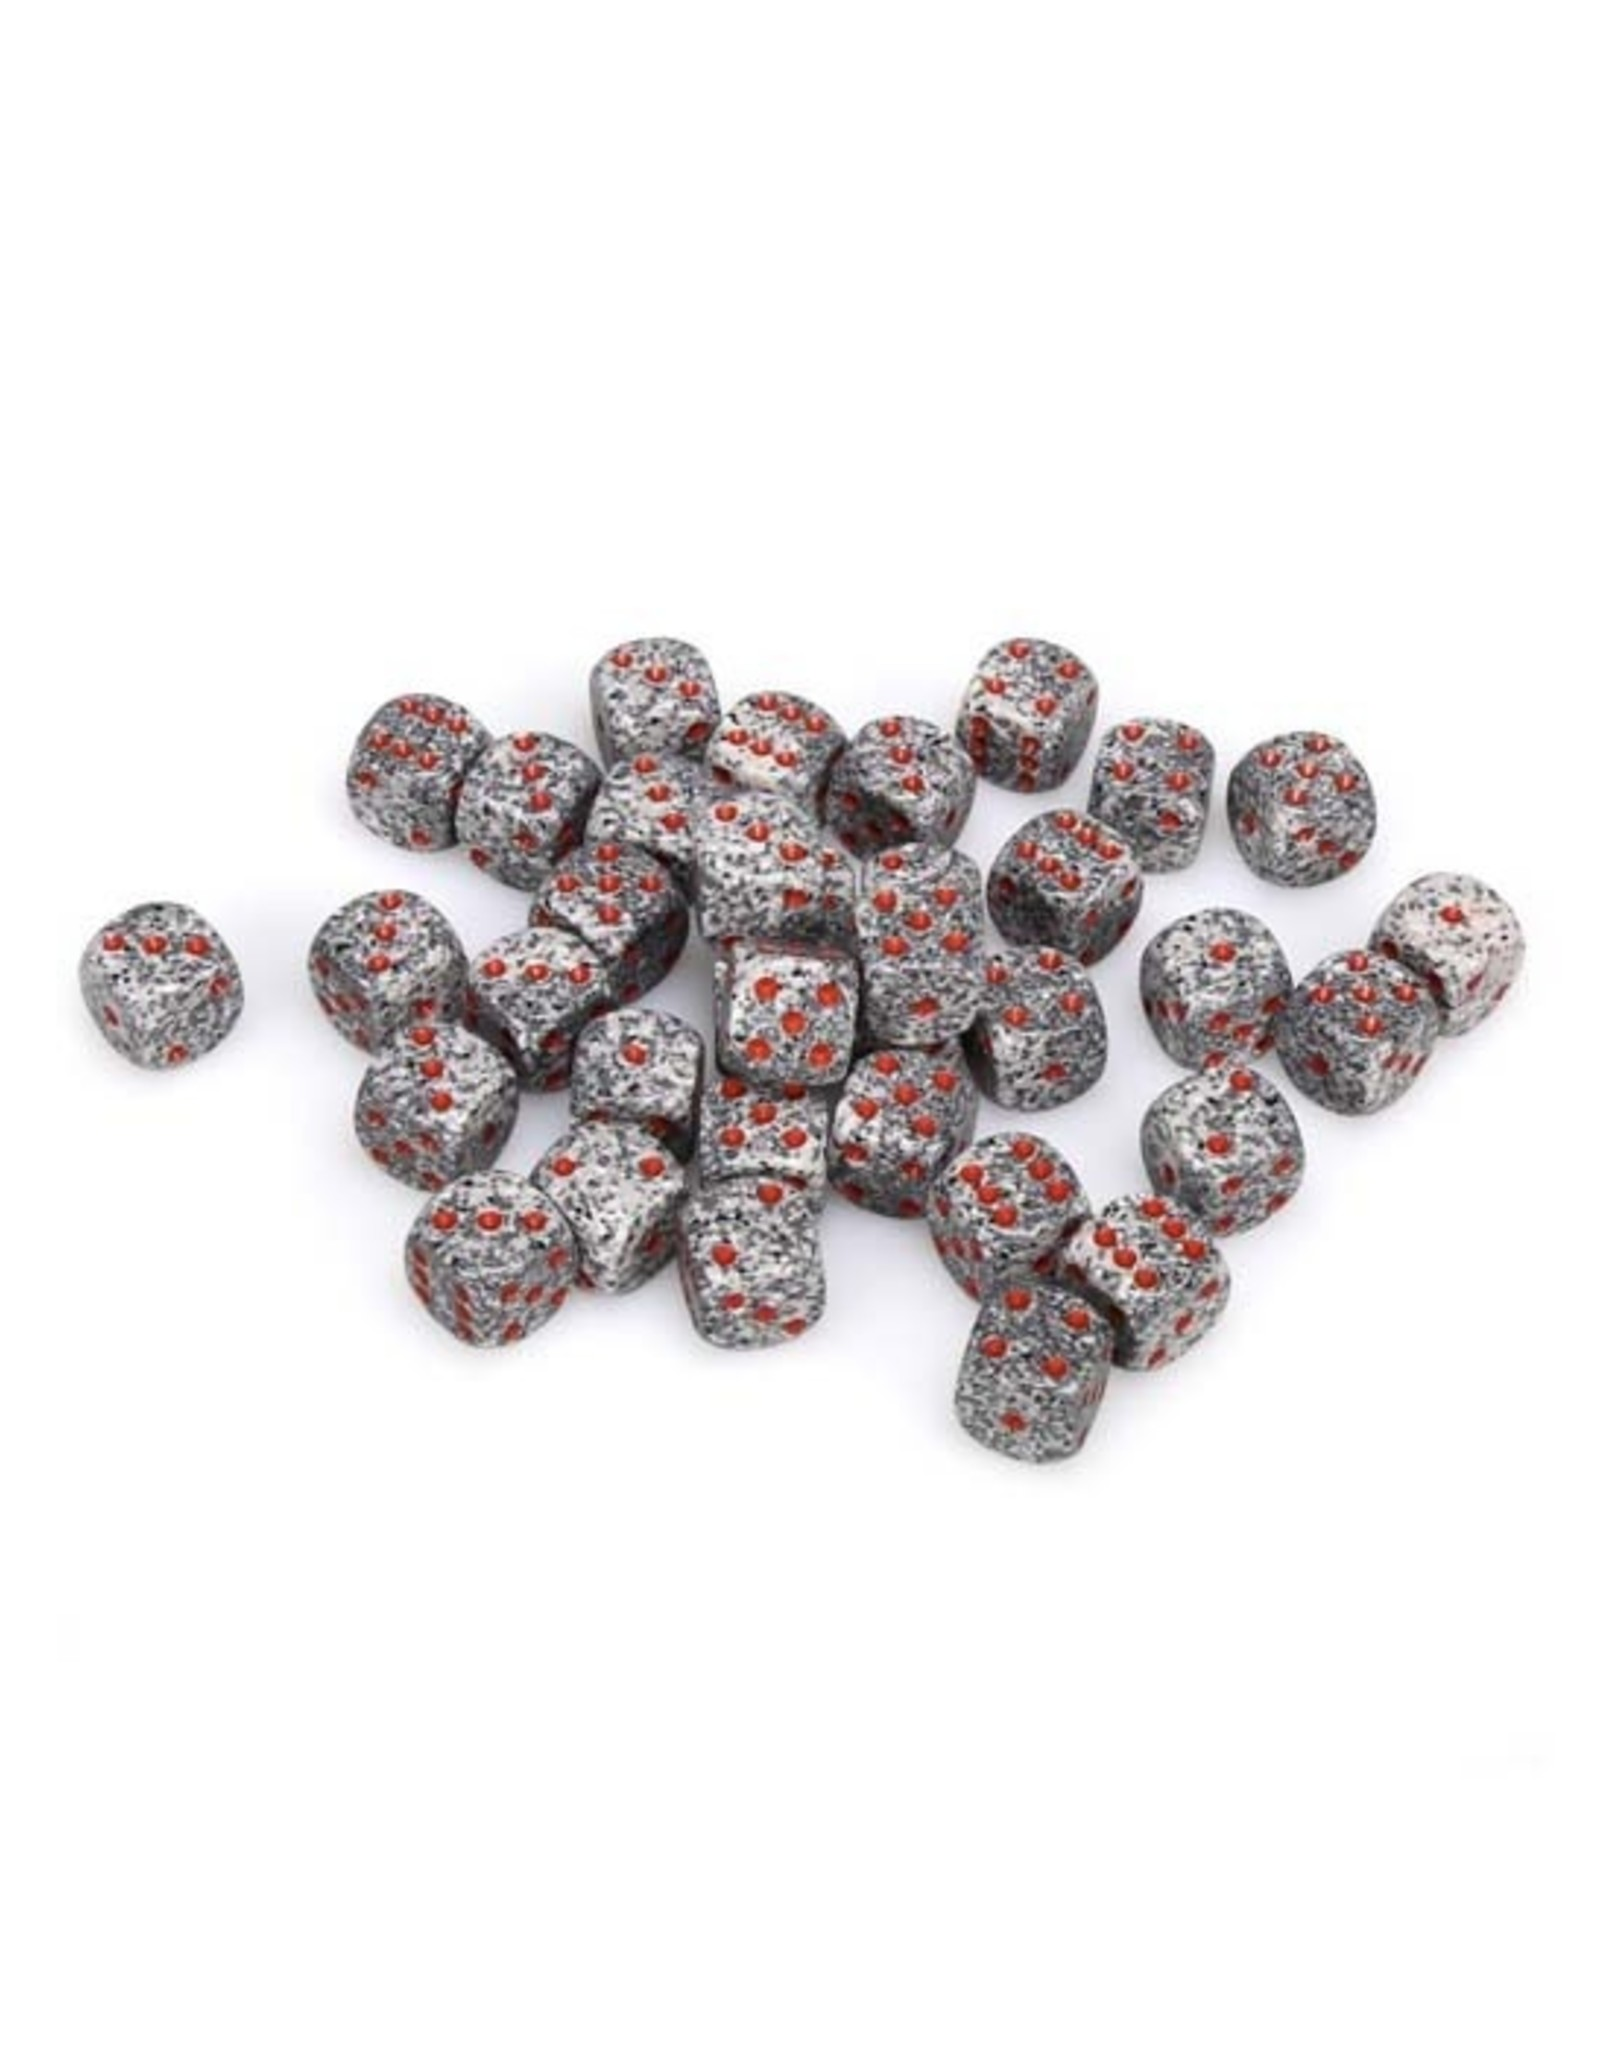 Chessex Chessex: 12mm D6 - Speckled - Granite w/ Red